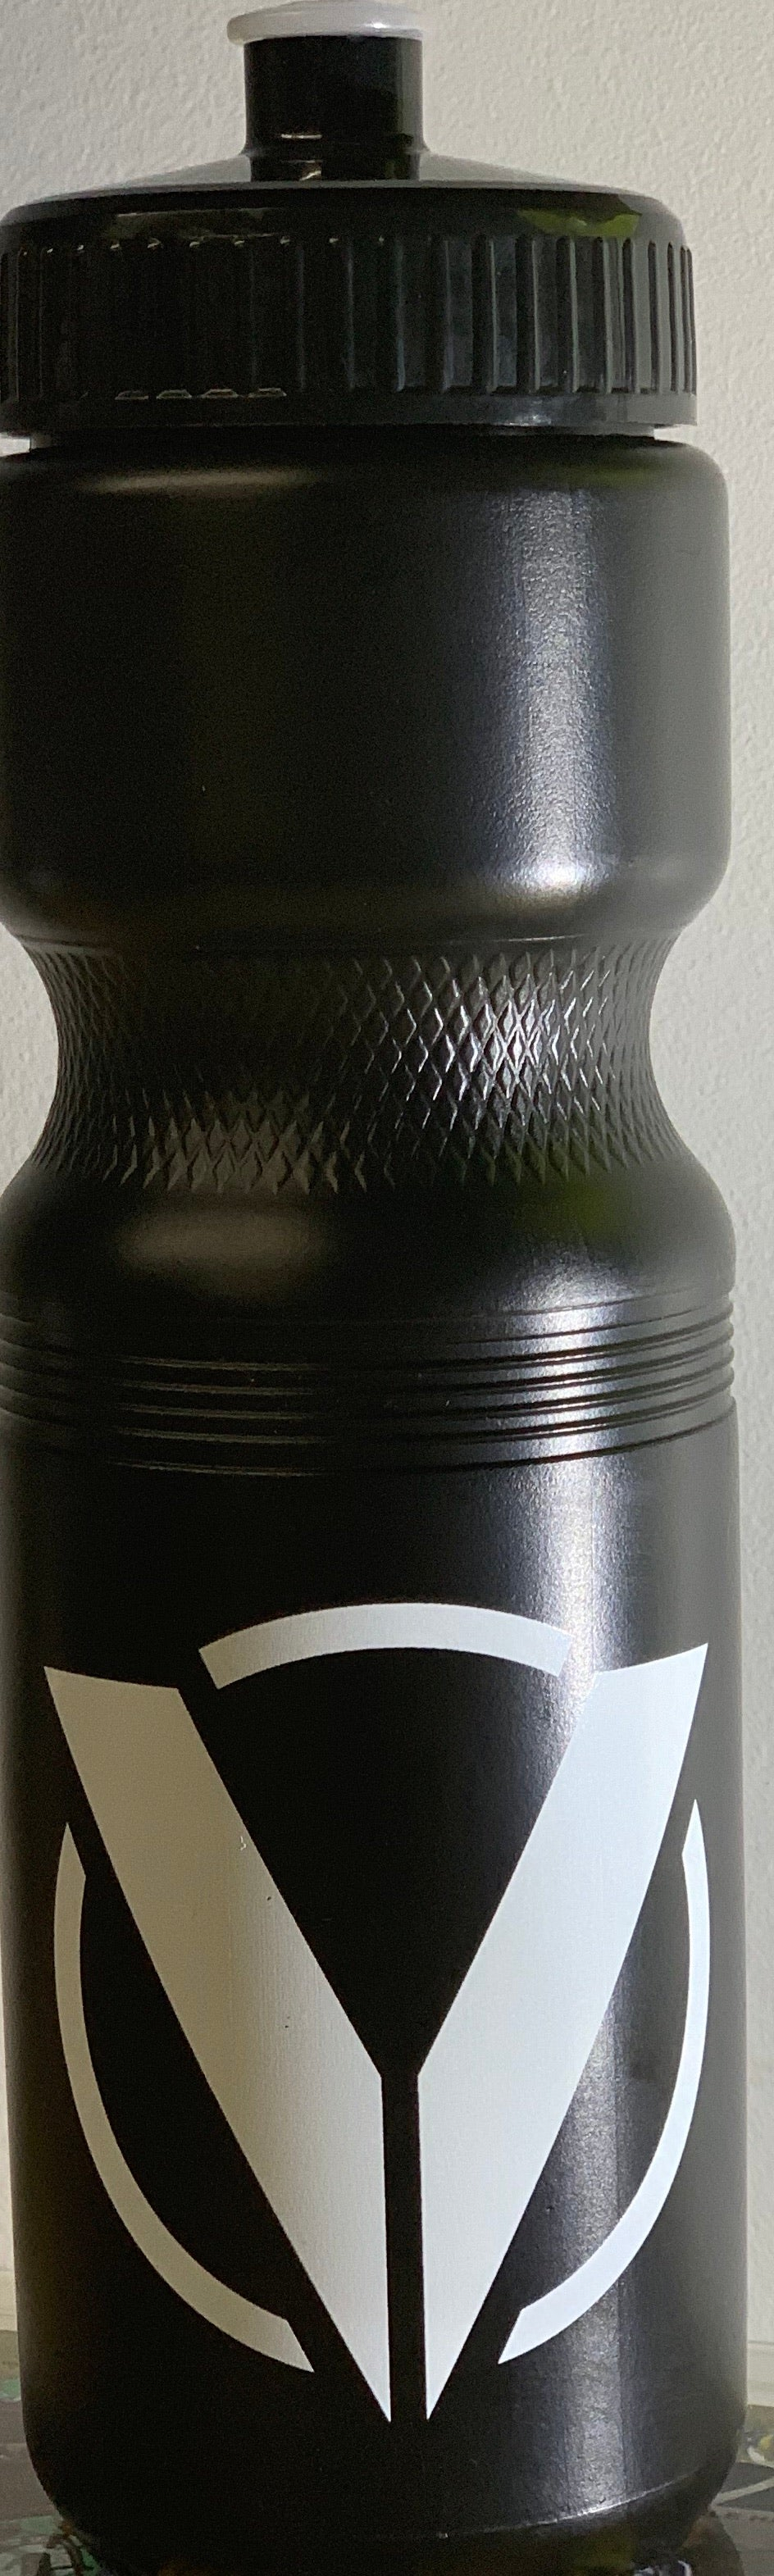 ViralMoto 28oz cycling bottle